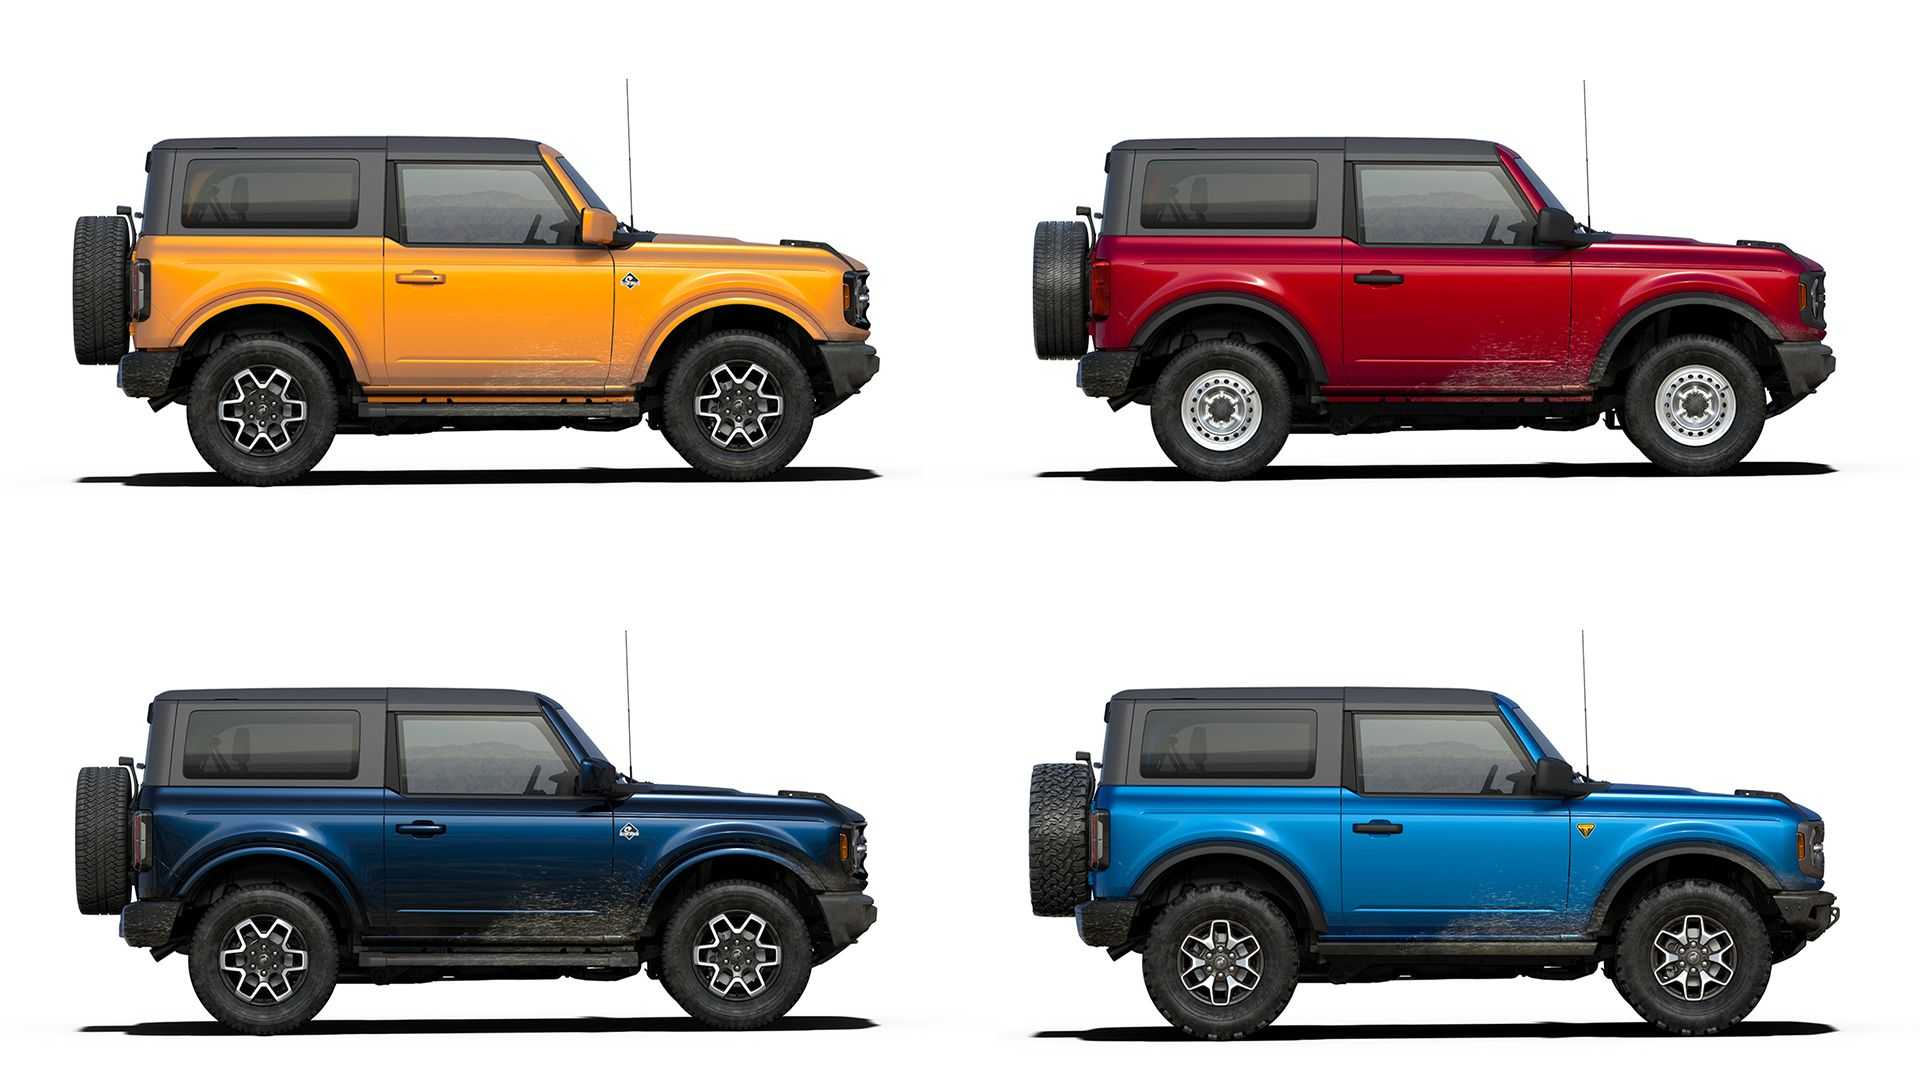 2021 Ford Bronco Configurator Is Live, Most Expensive Costs $63,995